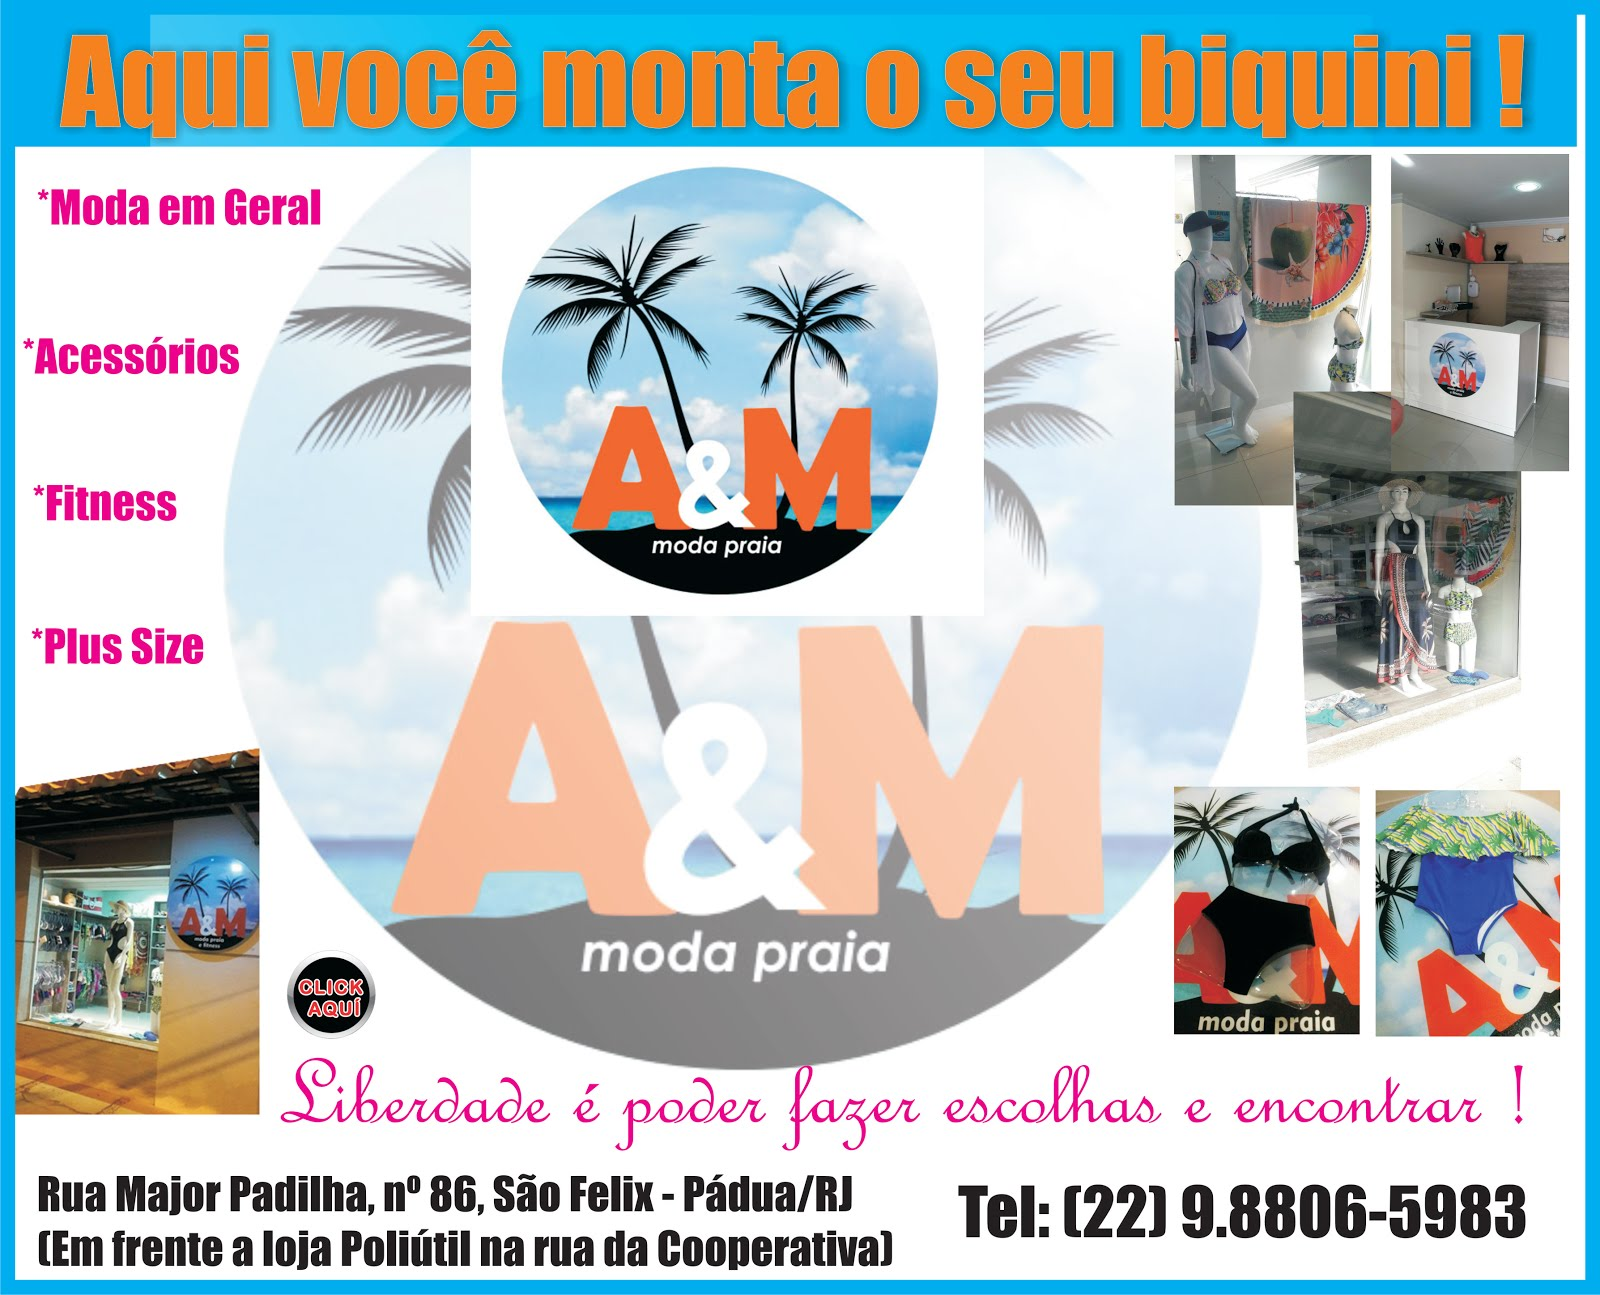 A&M MODA PRAIA, FTNESS & PLUS SIZE !